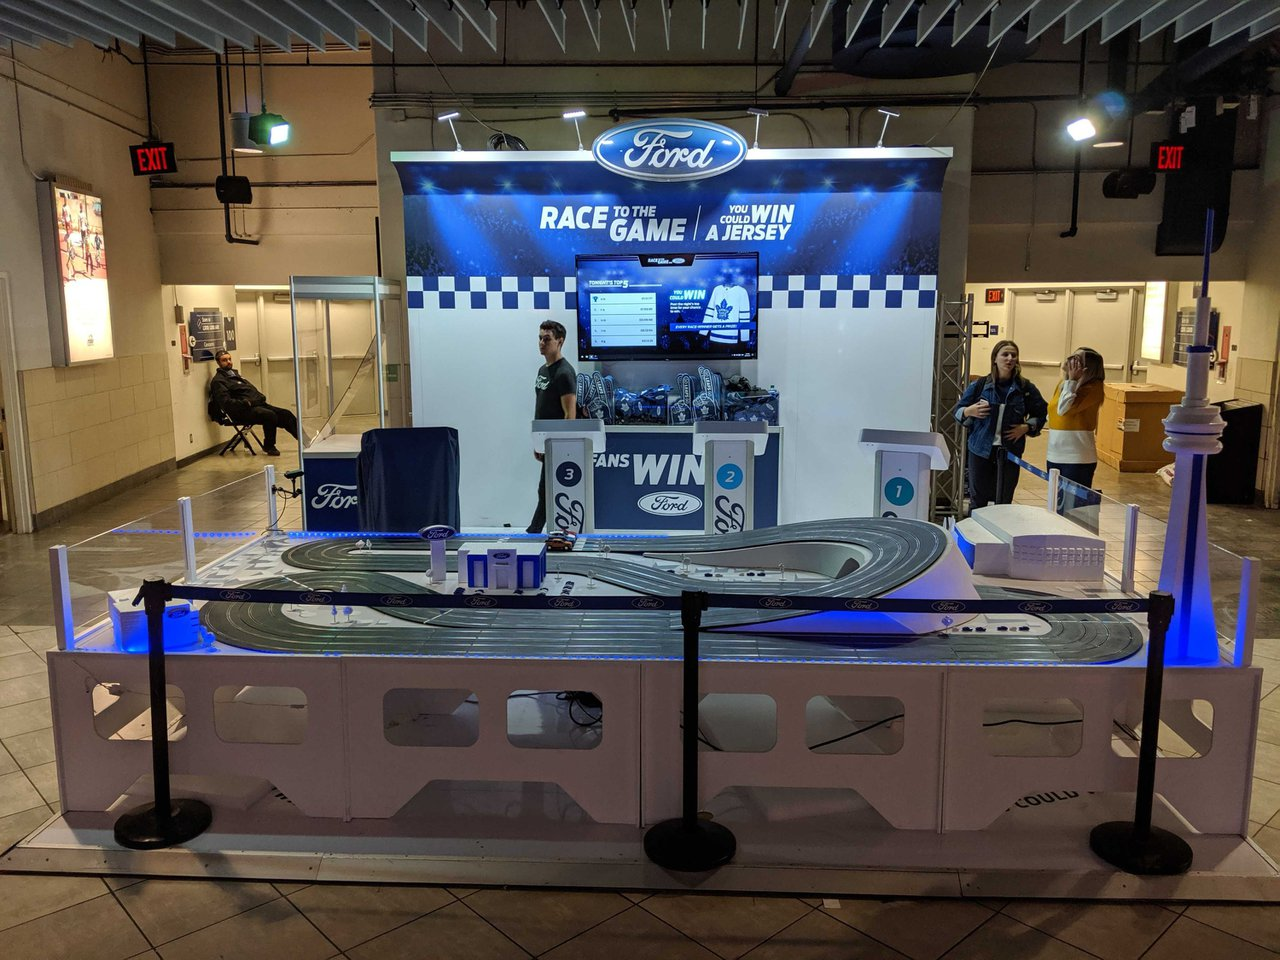 Ford Race to the Game photo IMG_20190925_193507.jpg